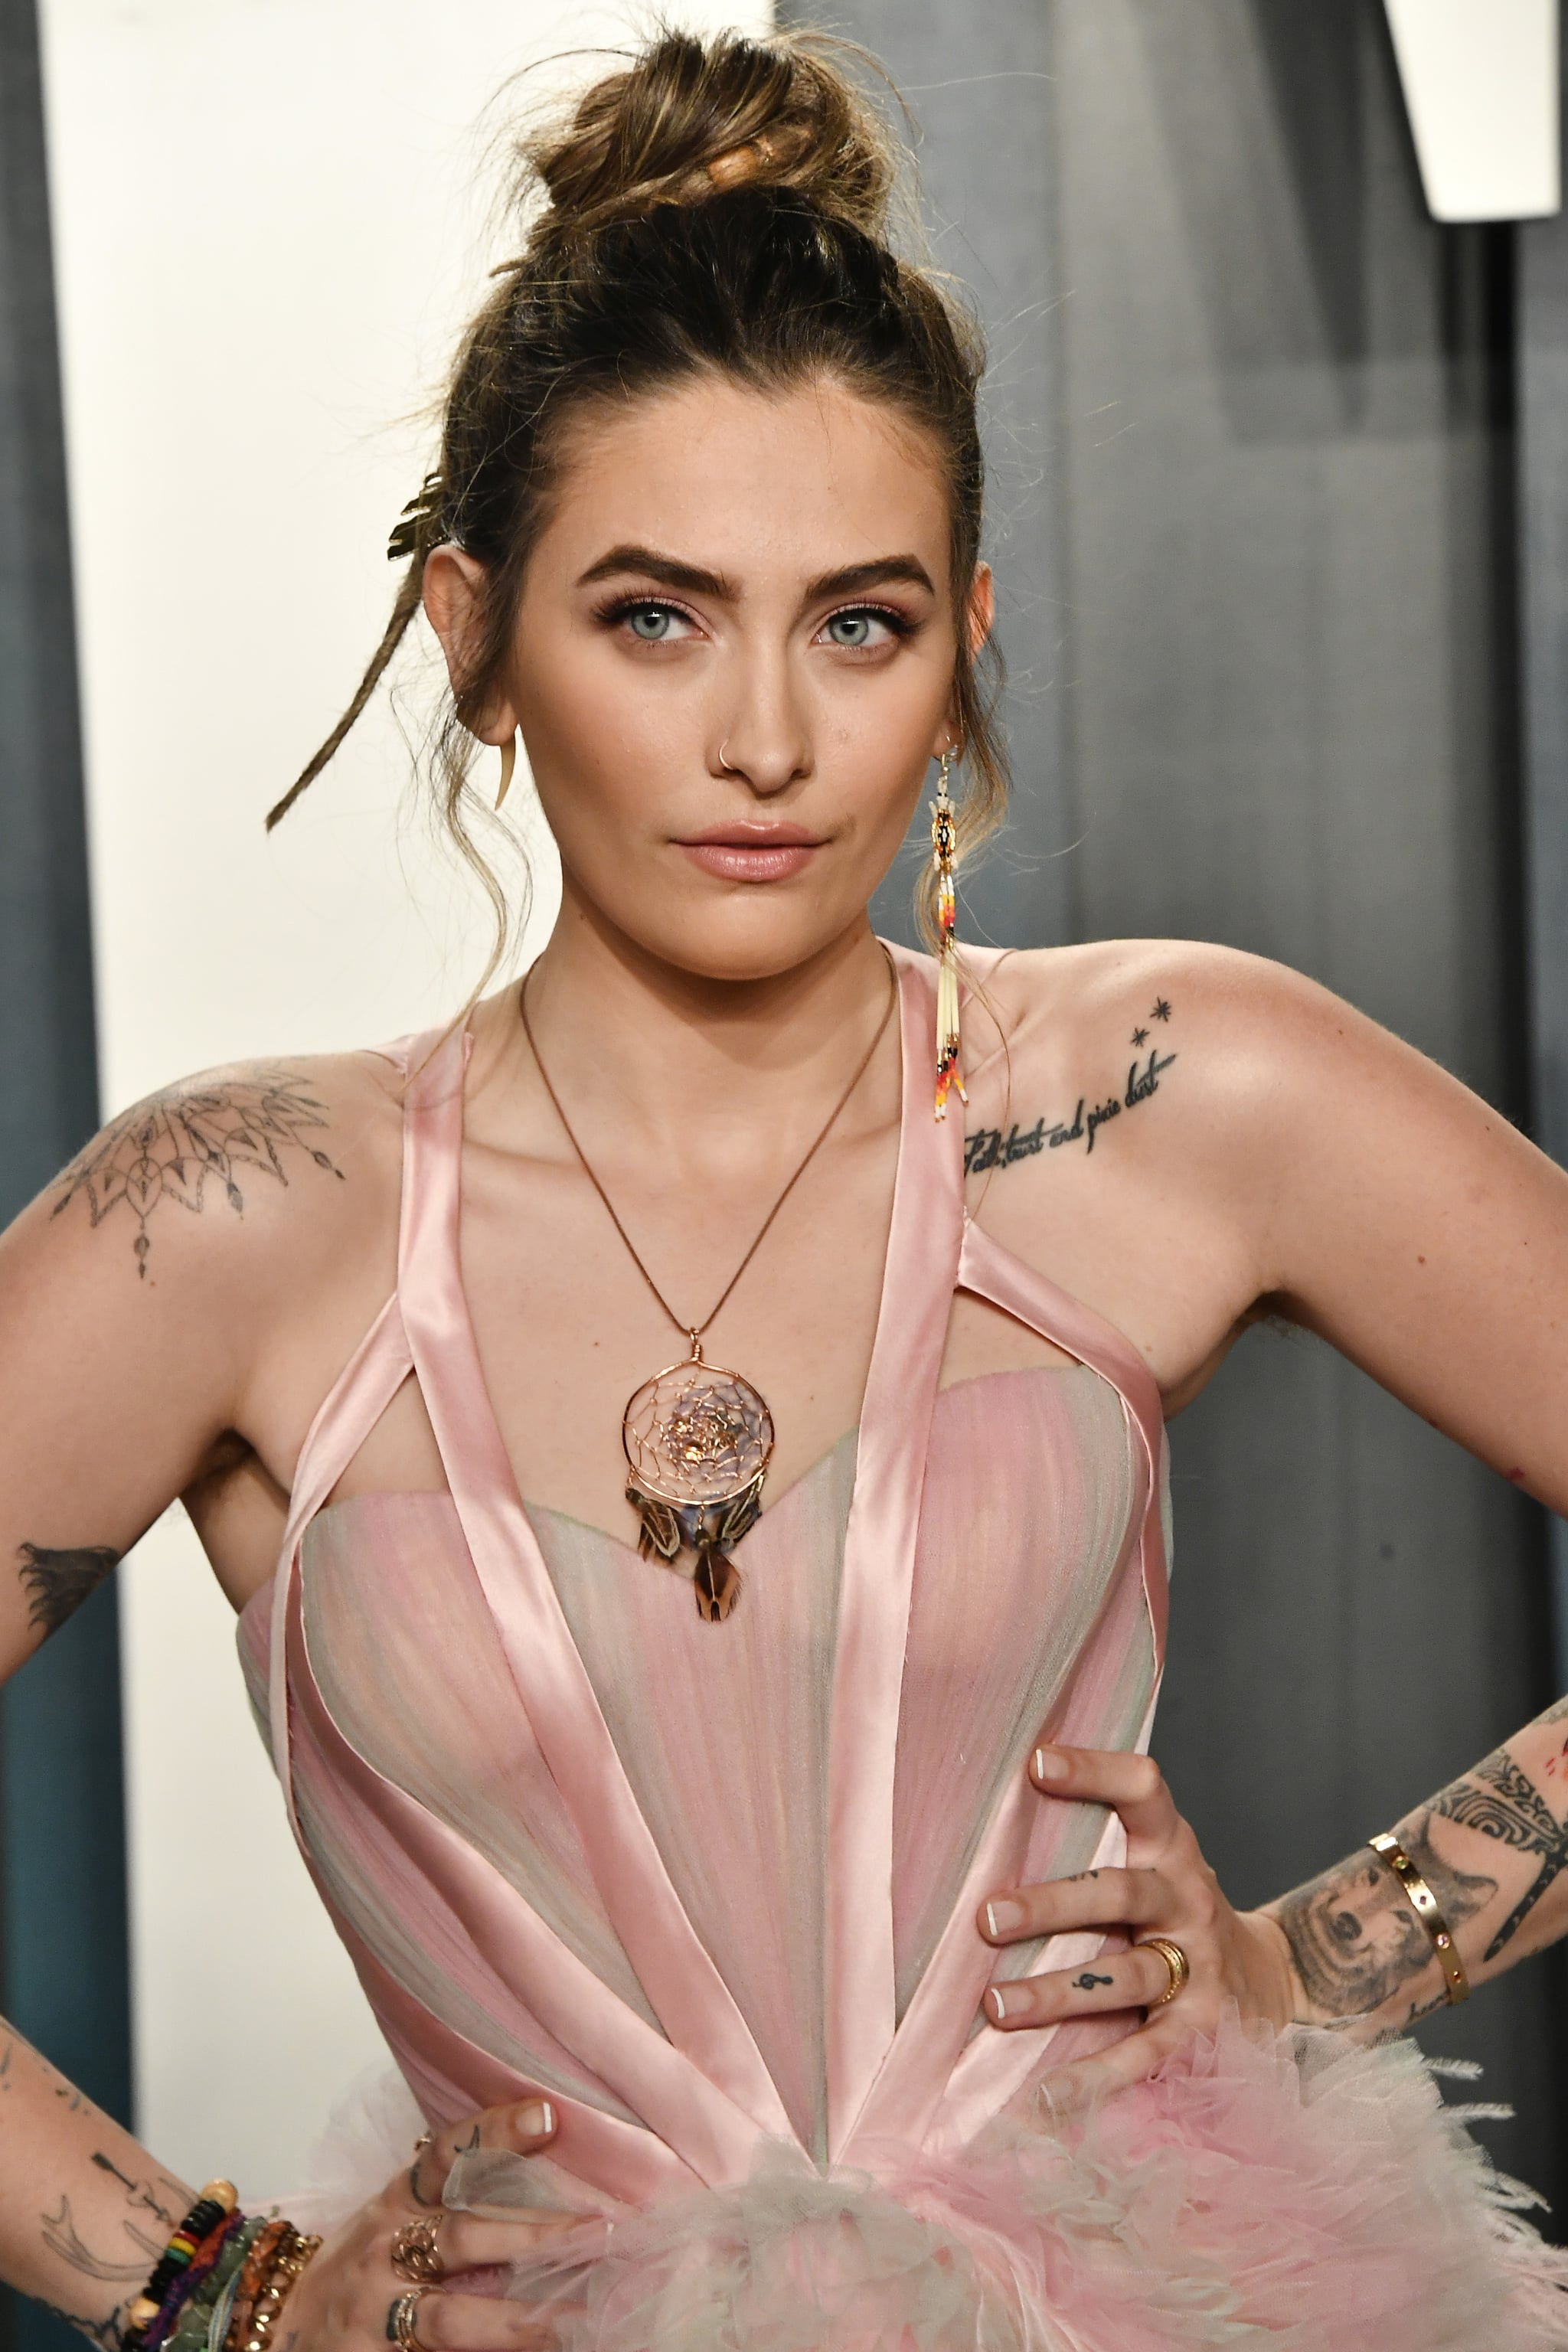 BEVERLY HILLS, CALIFORNIA - FEBRUARY 09: Paris Jackson attends the 2020 Vanity Fair Oscar Party hosted by Radhika Jones at Wallis Annenberg Center for the Performing Arts on February 09, 2020 in Beverly Hills, California. (Photo by Frazer Harrison/Getty Images)